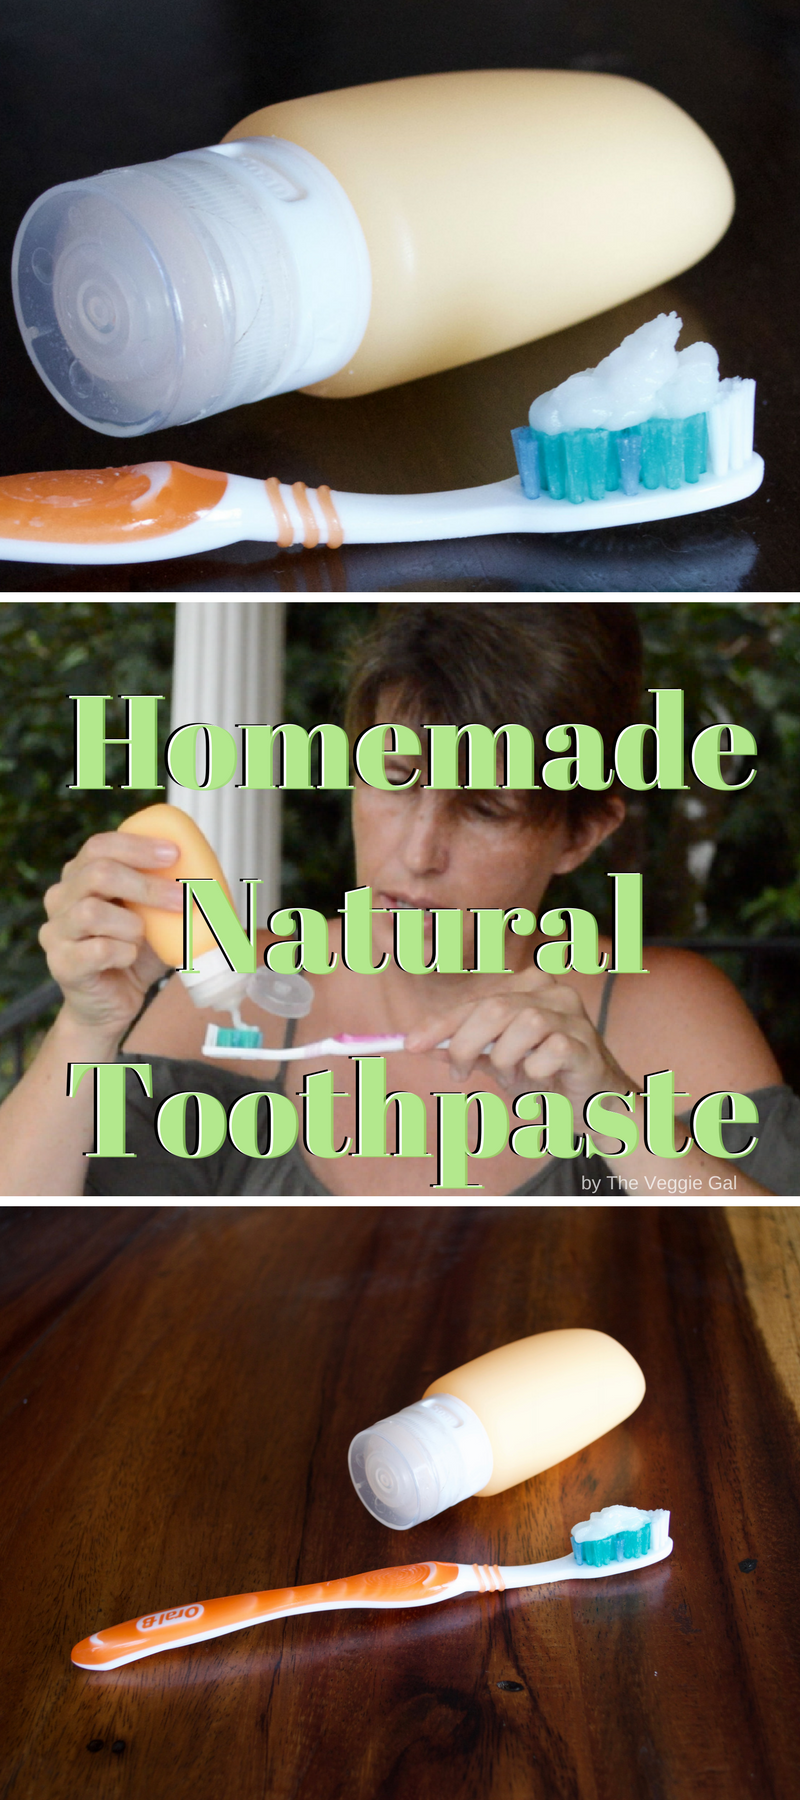 Homemade Natural Toothpaste with coconut oil